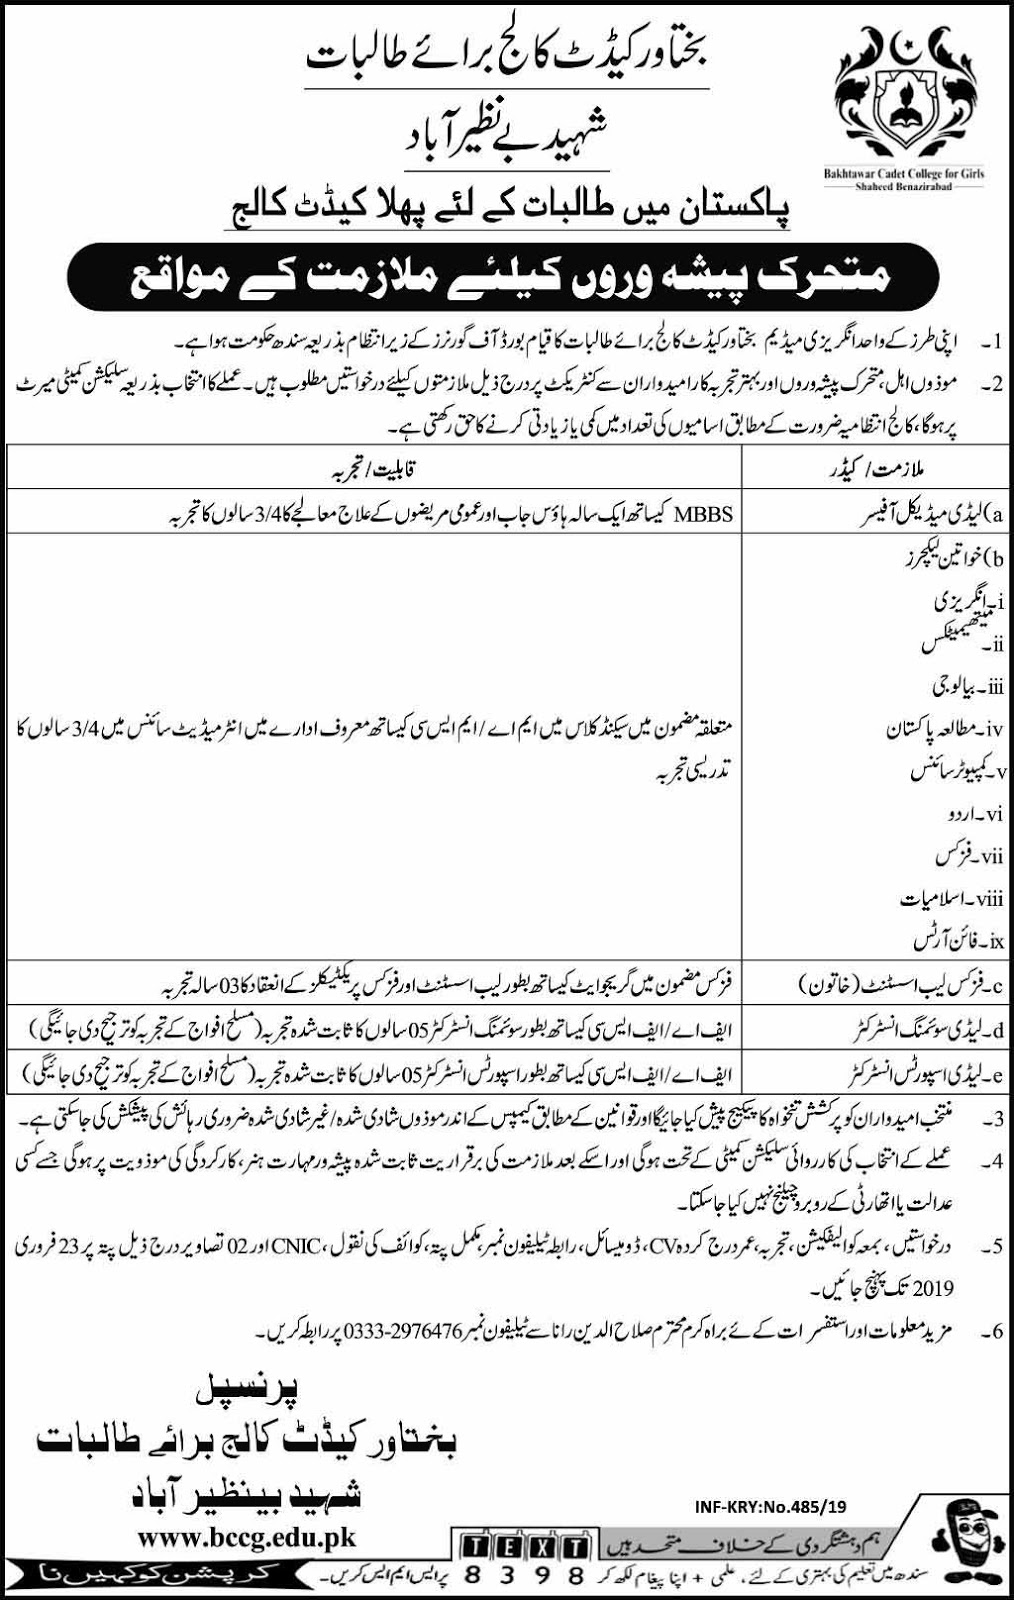 Latest Jobs In Bakhtawar Cadet College Nawabshah Feb 2019